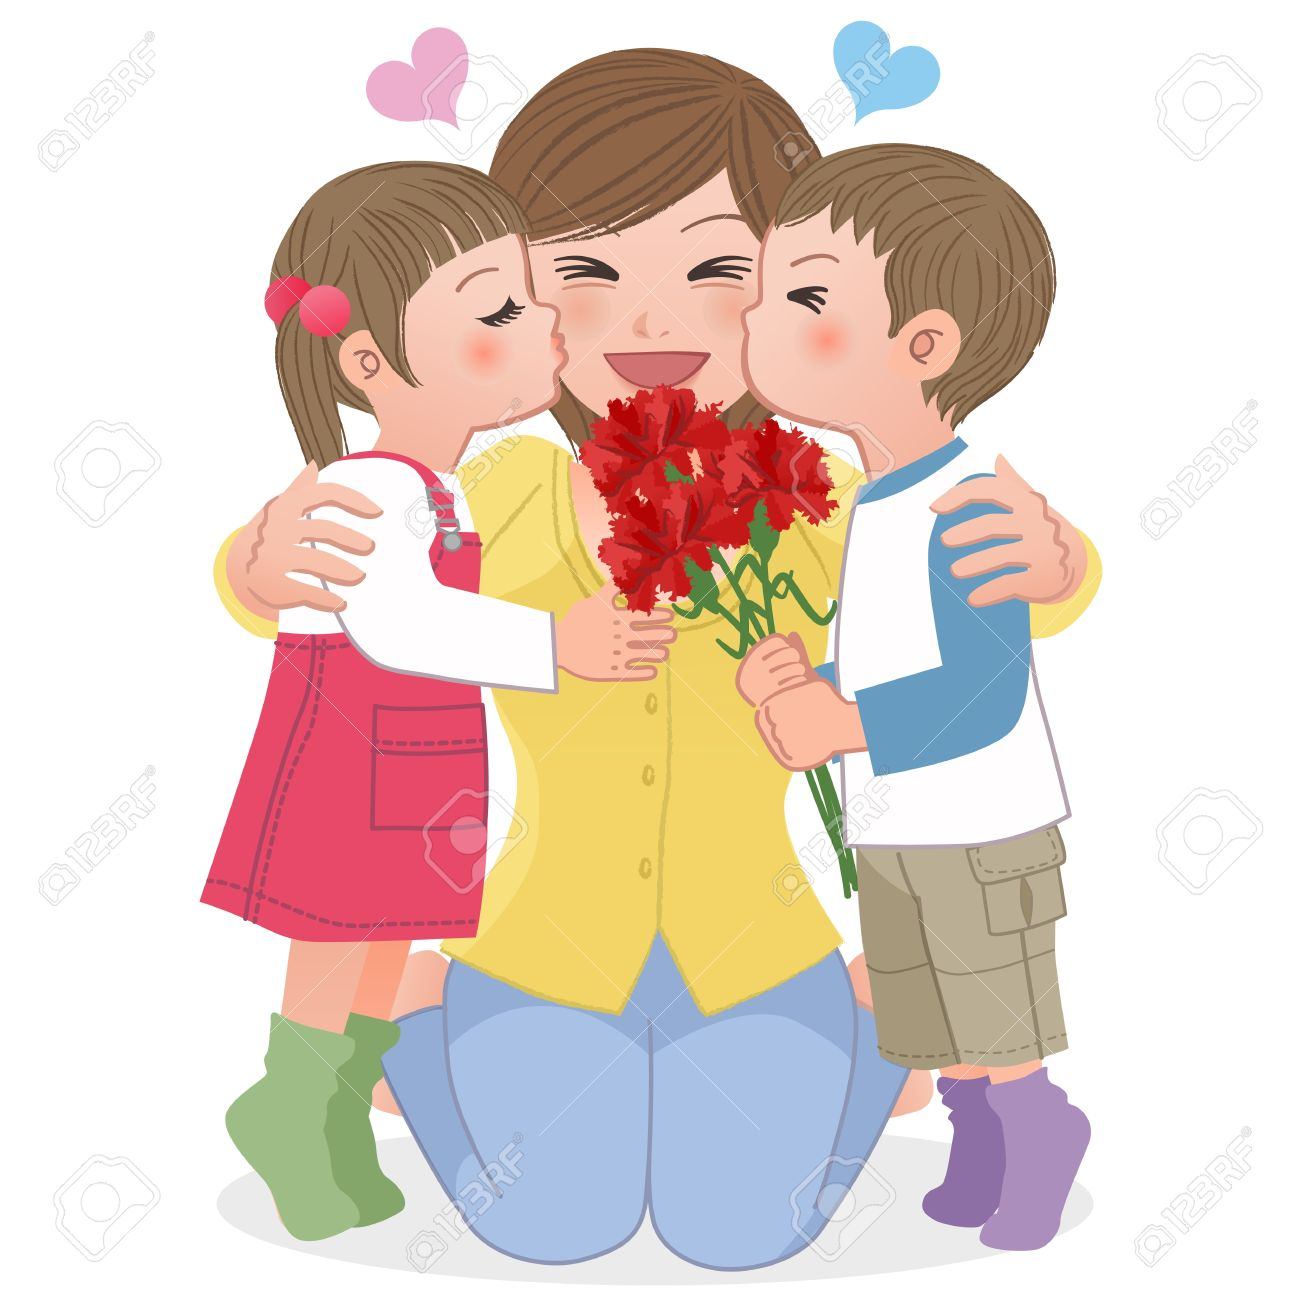 2,056 Mother And Child Hugging Stock Illustrations, Cliparts And.